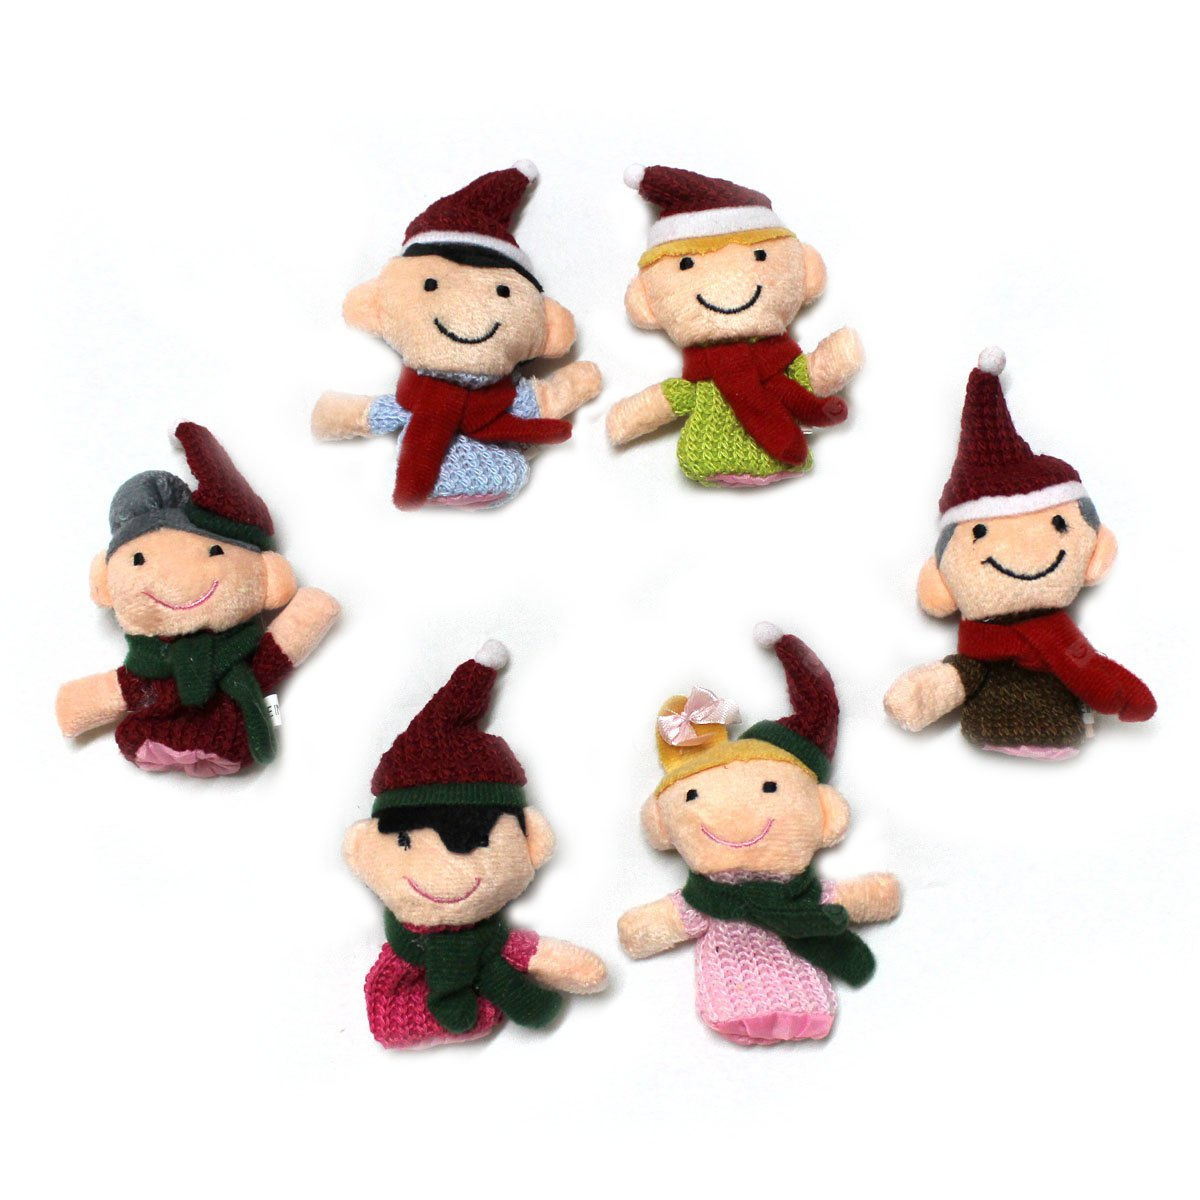 Christmas Family Knitted Finger Doll Interactive Game Props for Intellectual Development - 6Pcs